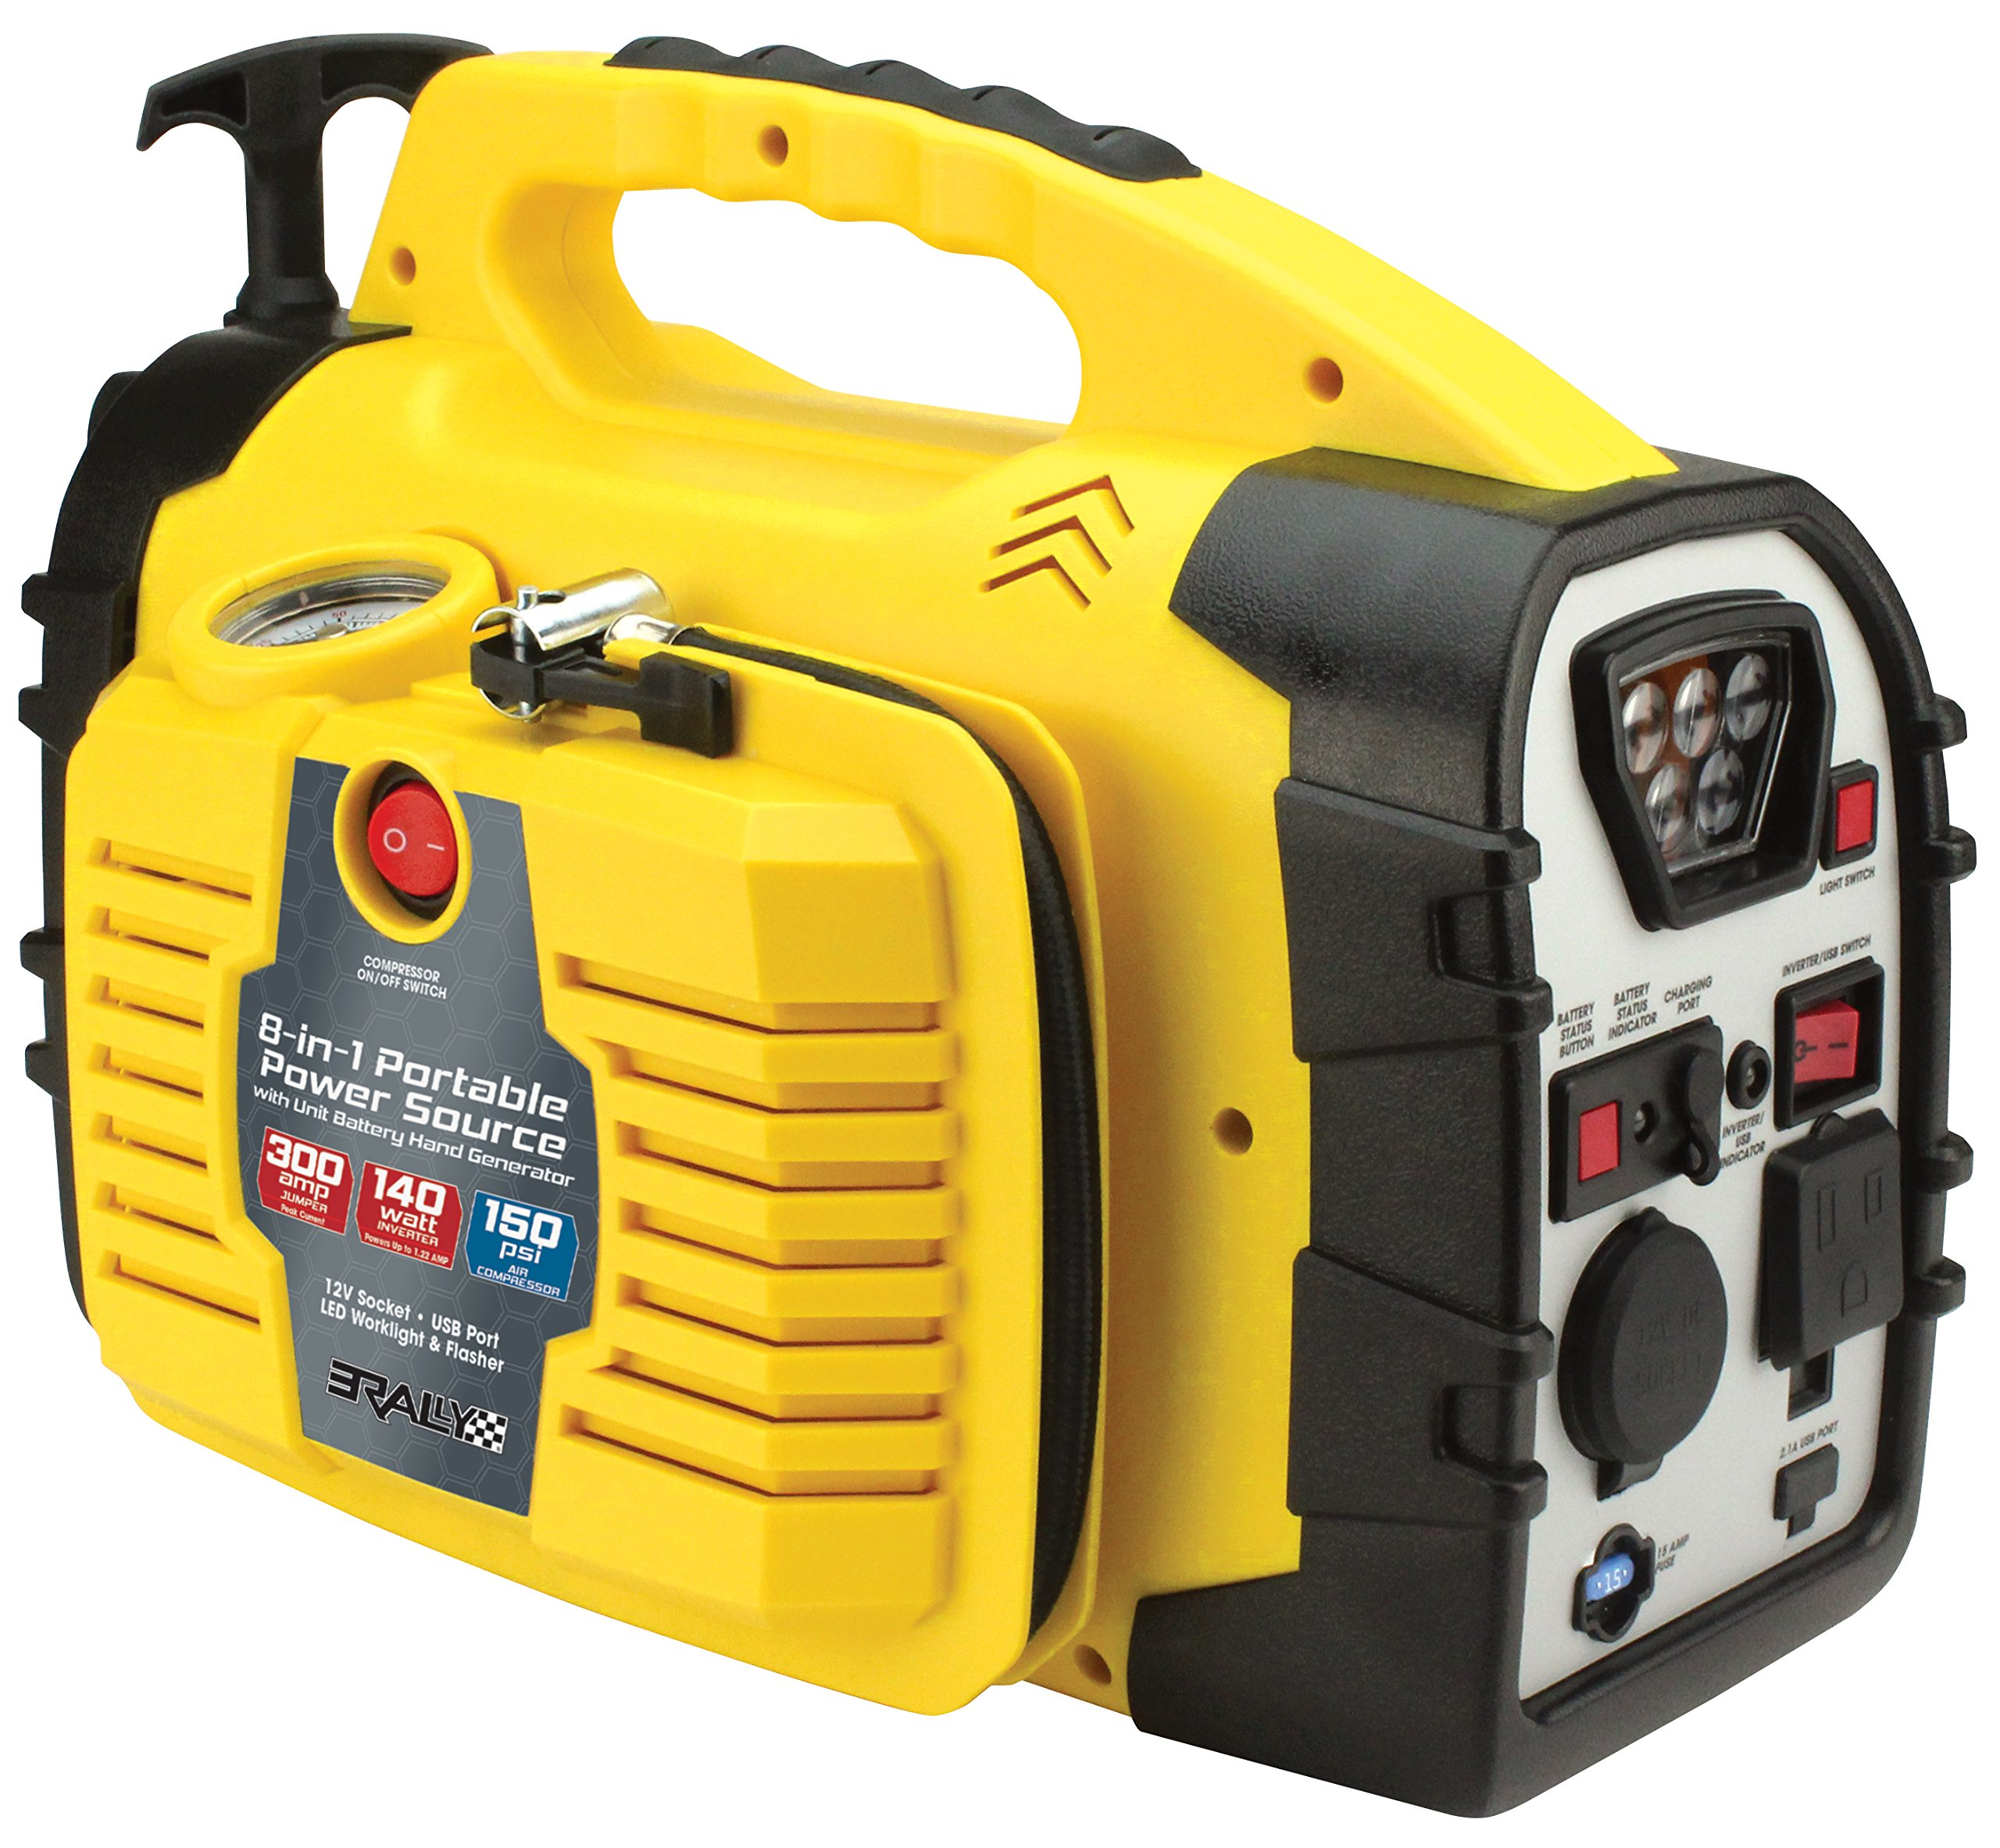 Rally Portable 8 in 1 Power Source and Jumpstarter Unit with Hand Generator (7471)